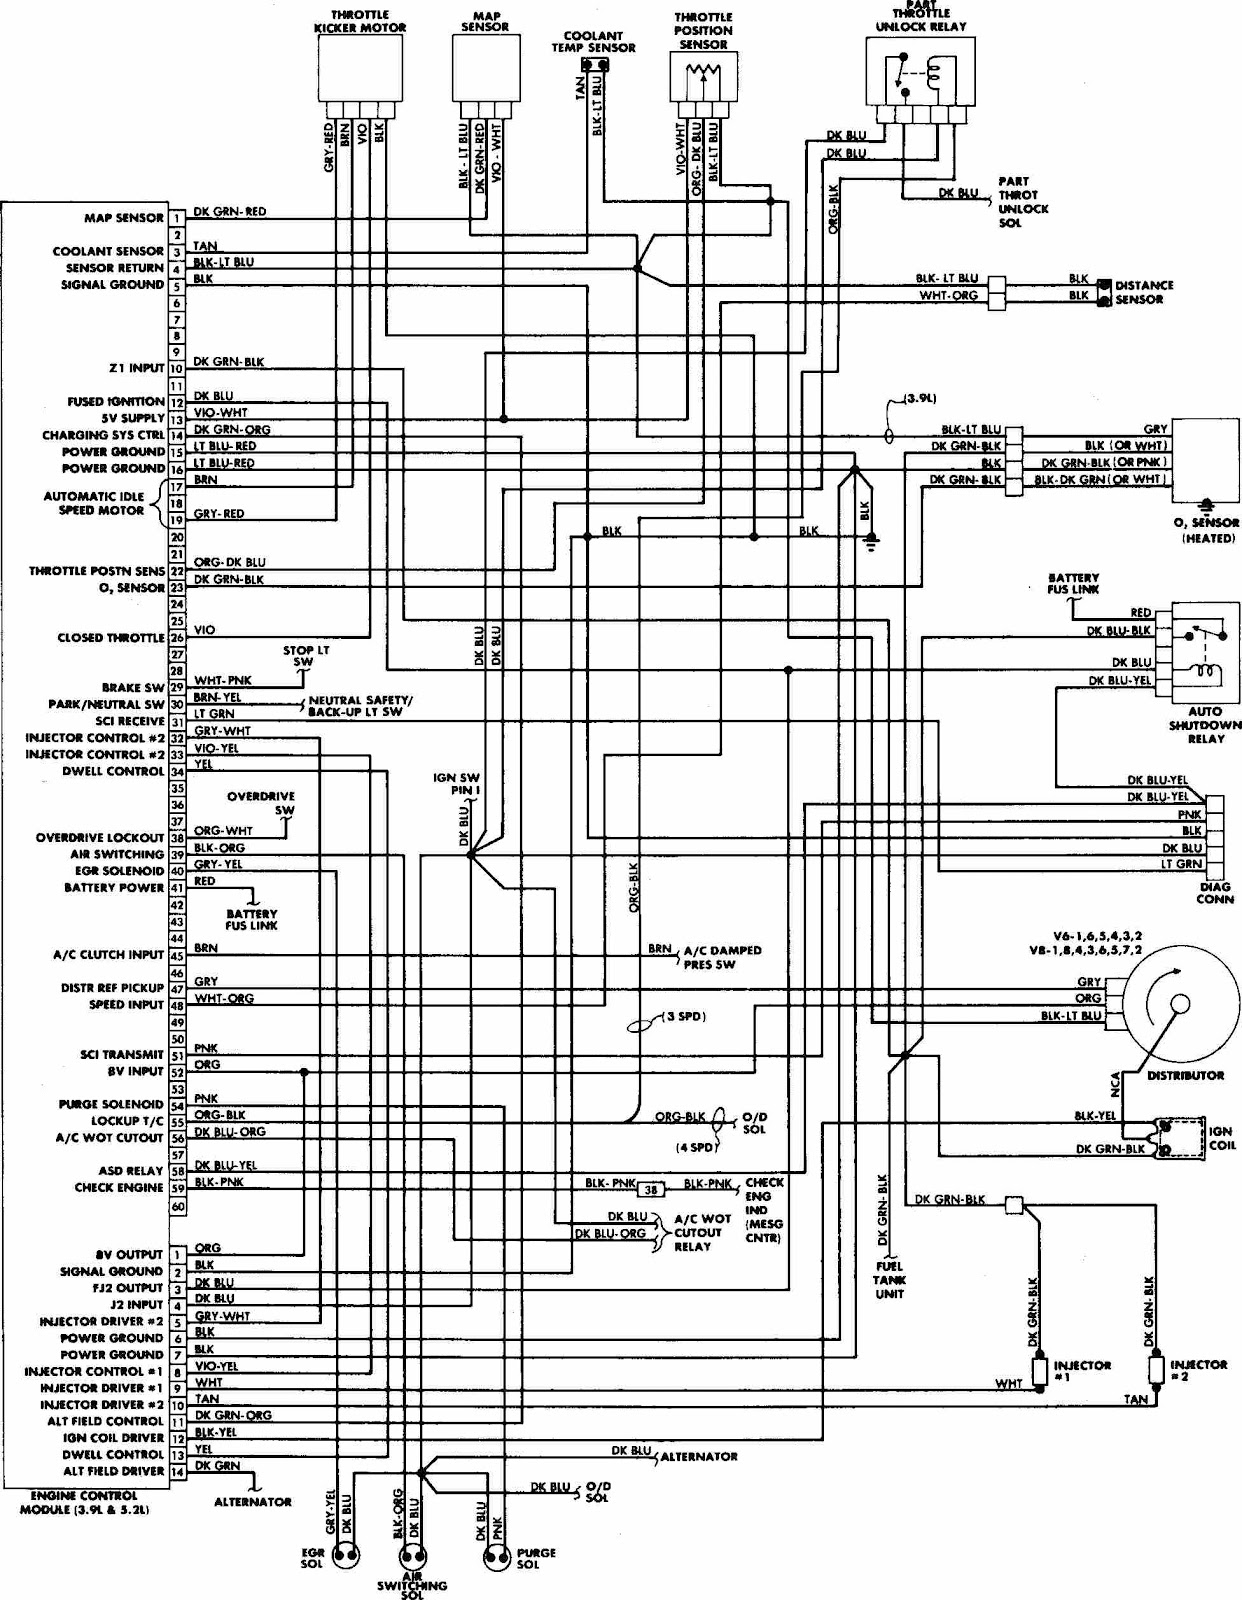 dodge w100 1988 engine control wiring diagram all about wiring diagrams  Ford Ignition Wiring Harness 1978